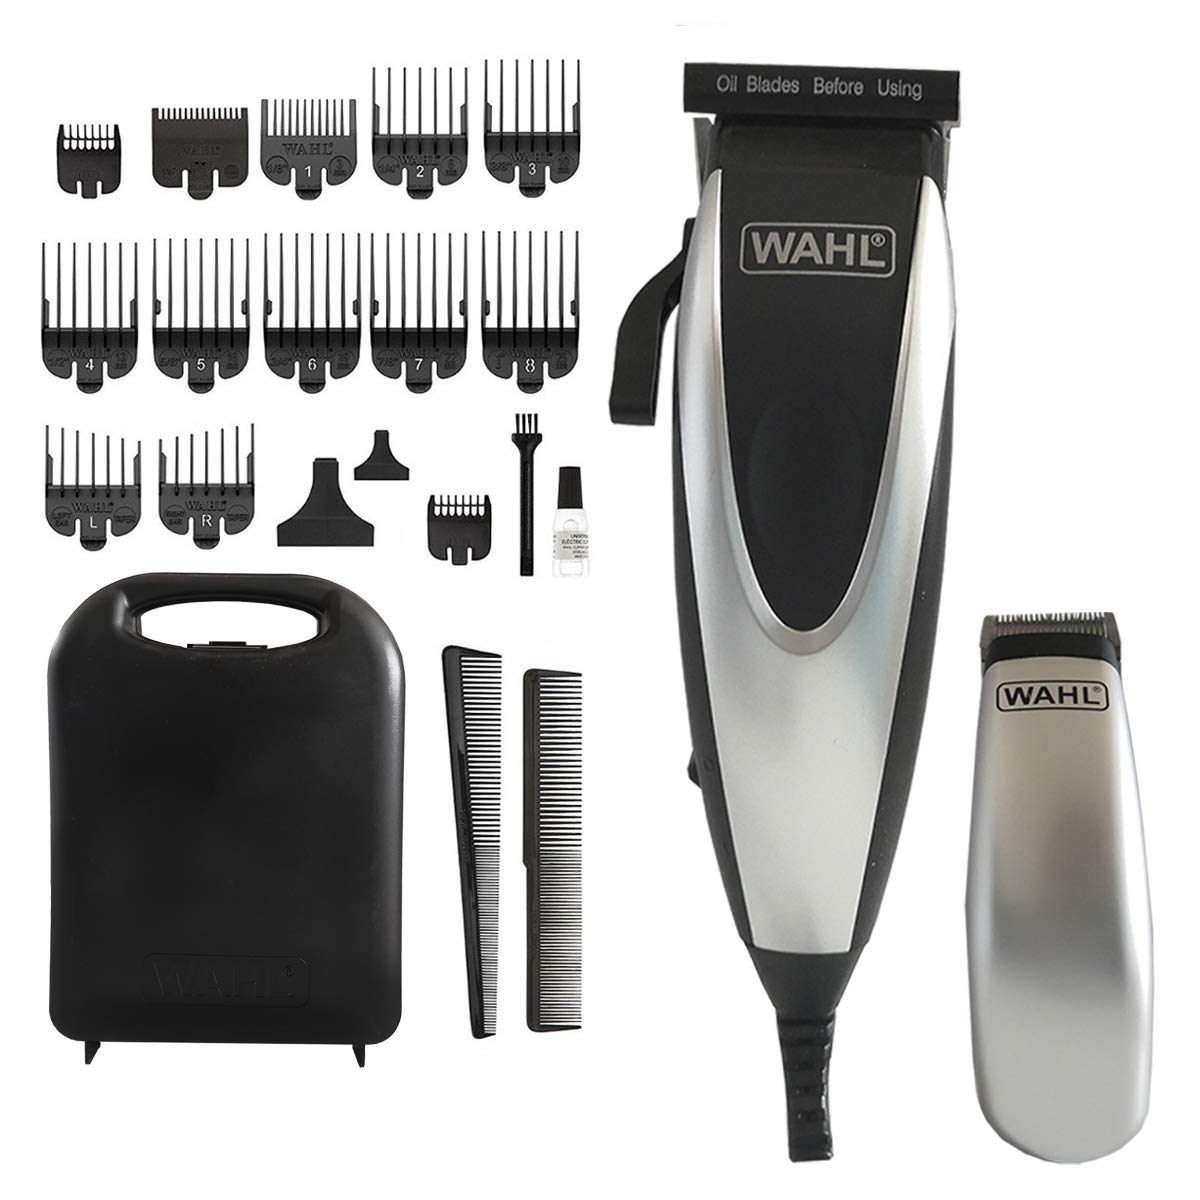 Wahl - Home Pro Combo 24 Pieces Kit - Black/Silver Complete Haircutting & Touch-UP Kit